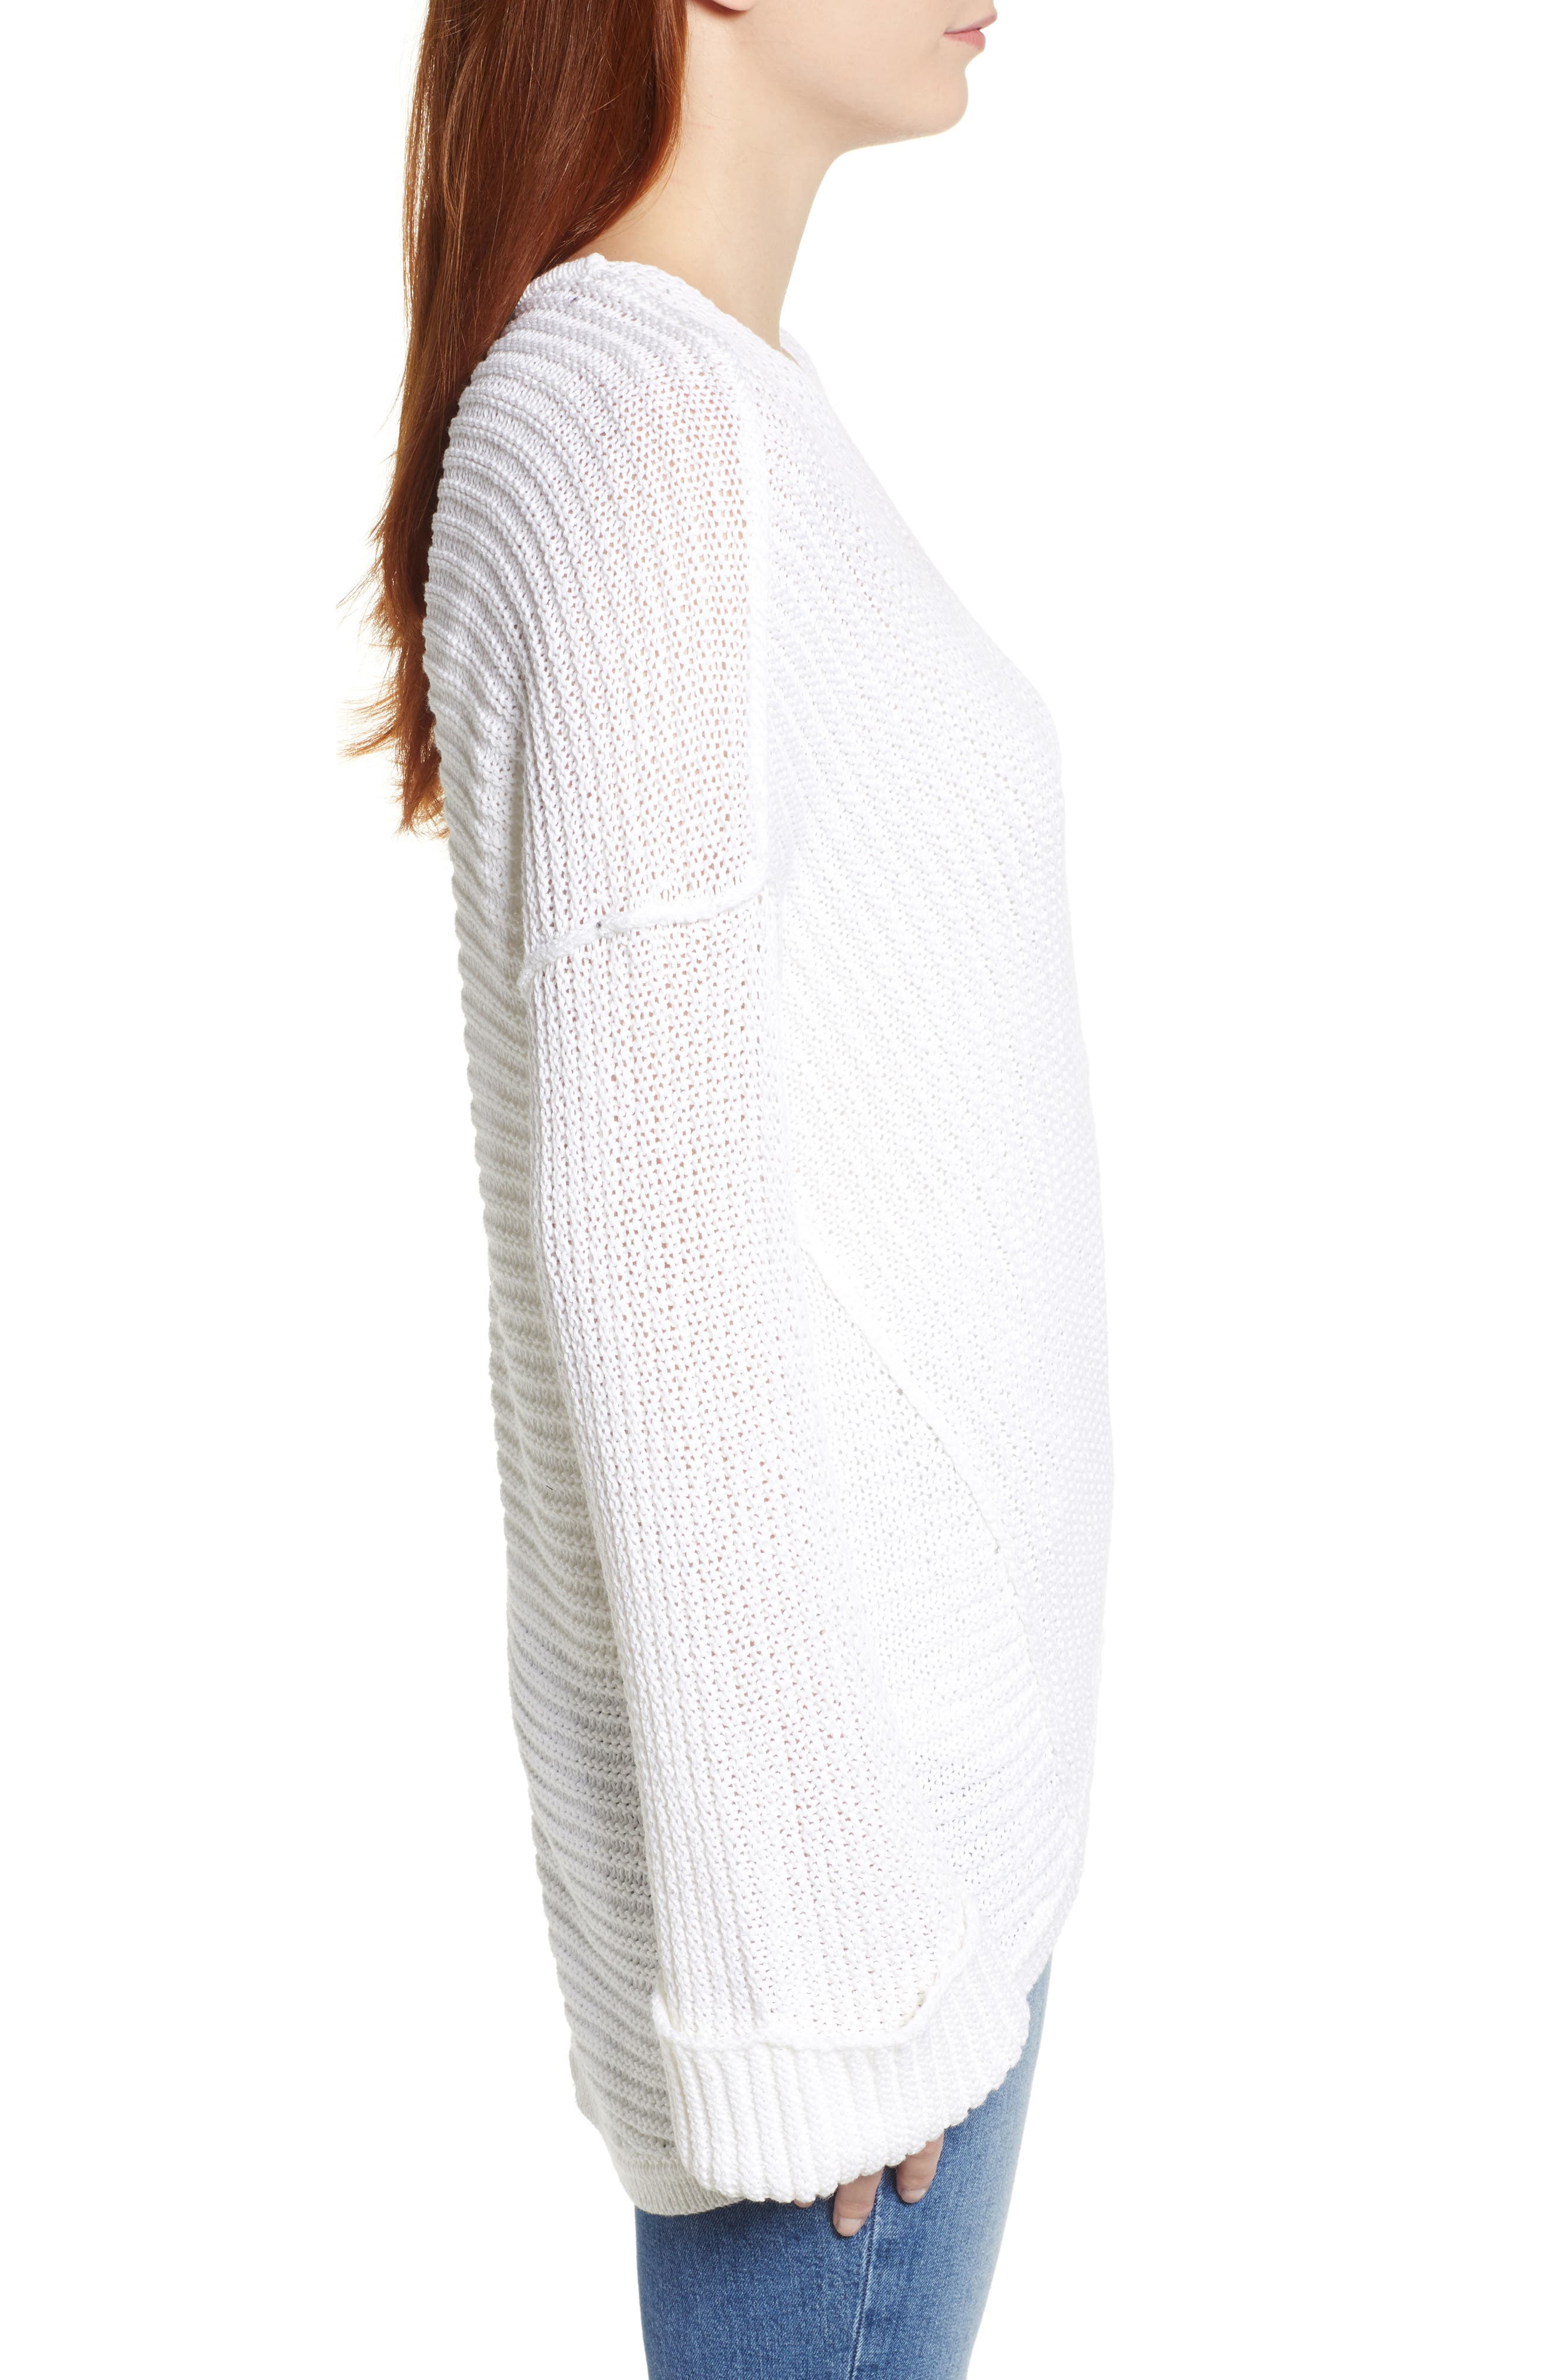 Cuffed Sleeve Sweater,                             Alternate thumbnail 3, color,                             100